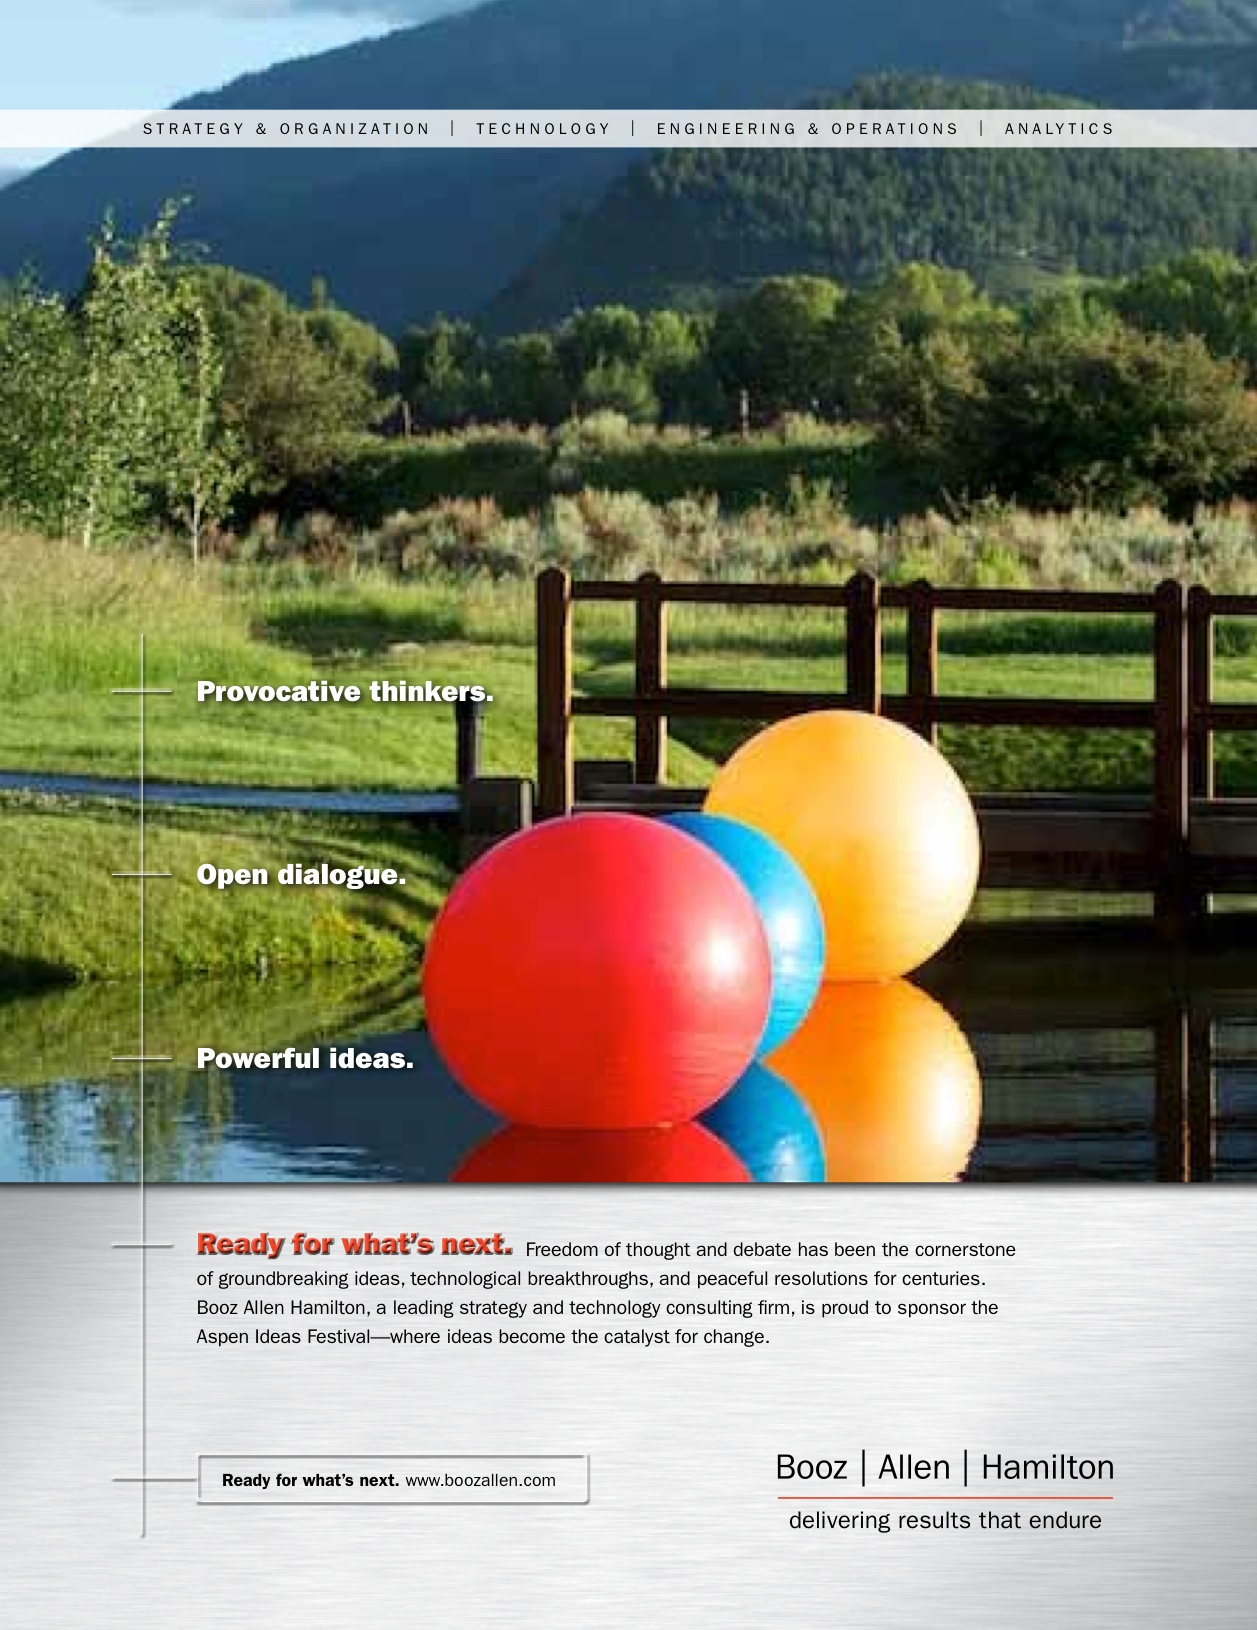 RCA_Covers_BA11-106_Aspen Ideas Festival Ad_041111B.jpg